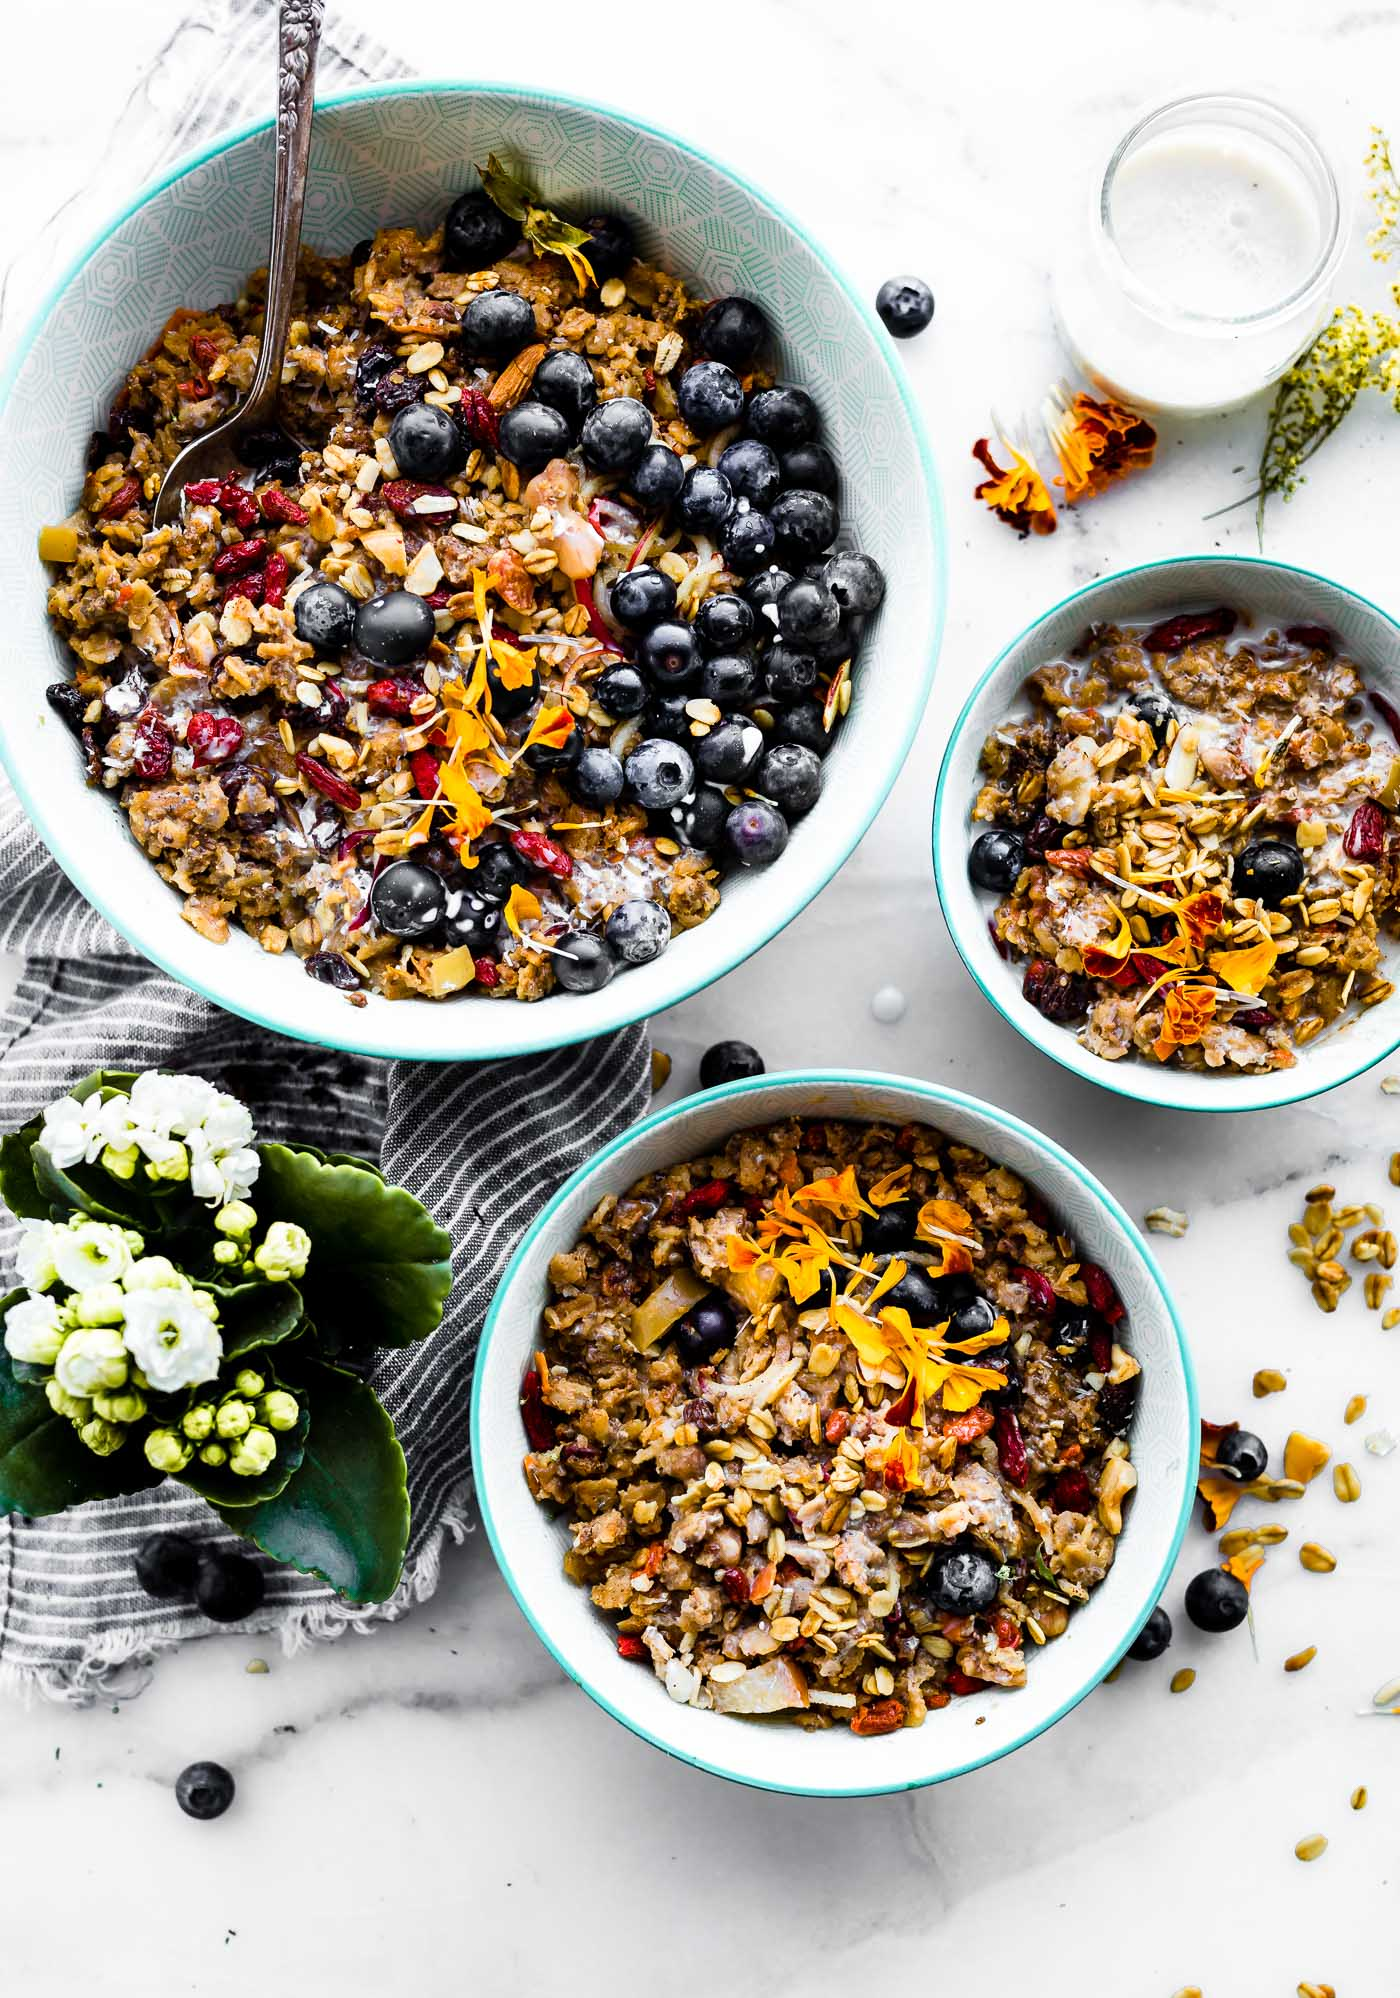 Superfood Instant Pot Oatmeal! A healthy breakfast meal prep recipe or breakfast in a jar! This InstaPot oatmeal is filled with superfoods such as gluten free rolled oats, apples, walnuts, flaxseed, goji berries, and more. A wholesome breakfast that can be made in a multi-cooker or stove top. Vegan friendly.